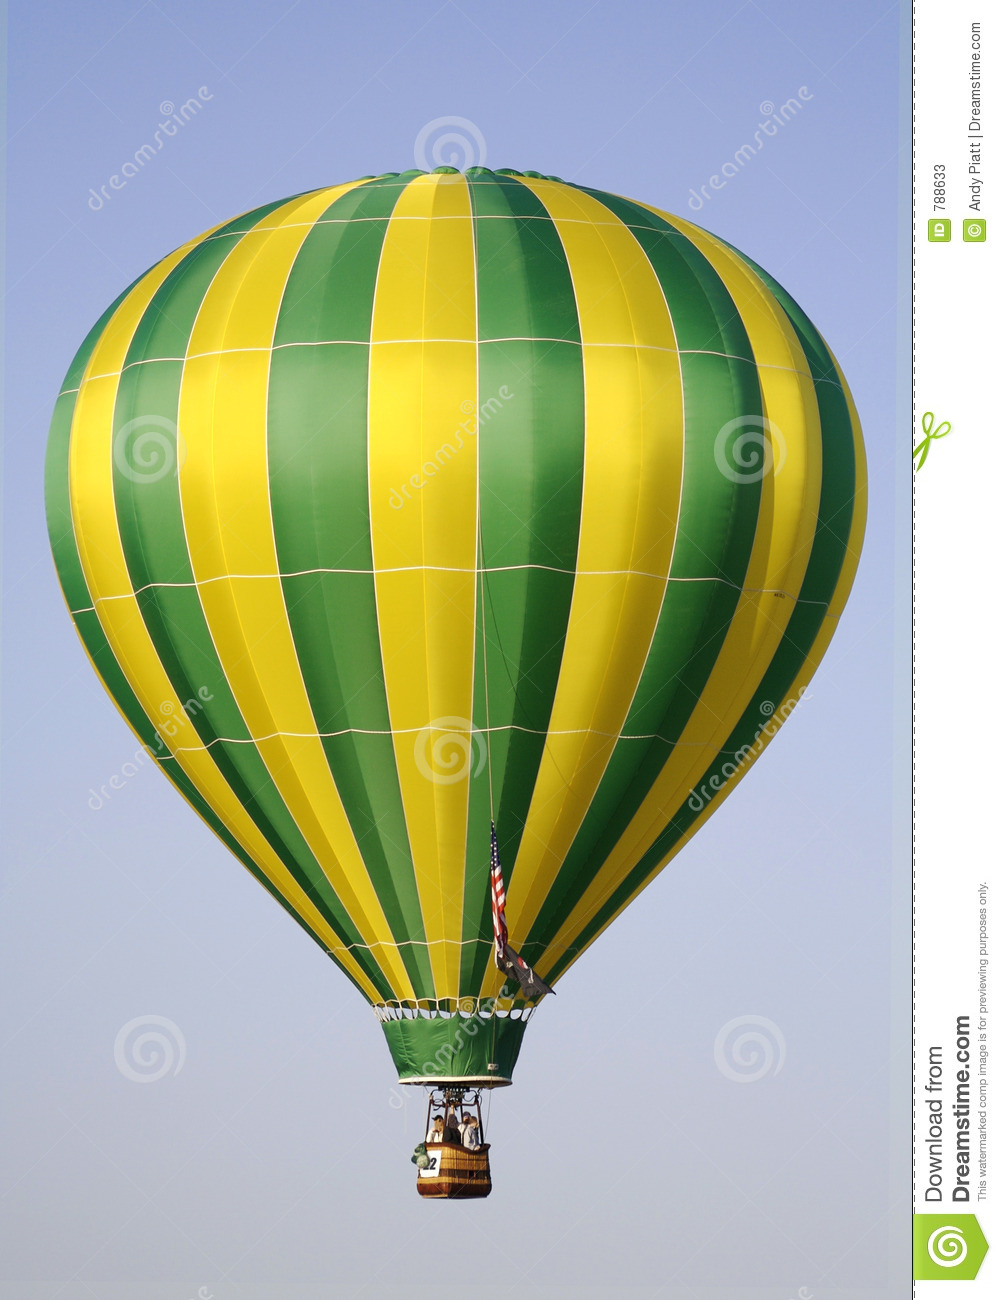 Yellow and Green Hot Air Balloon